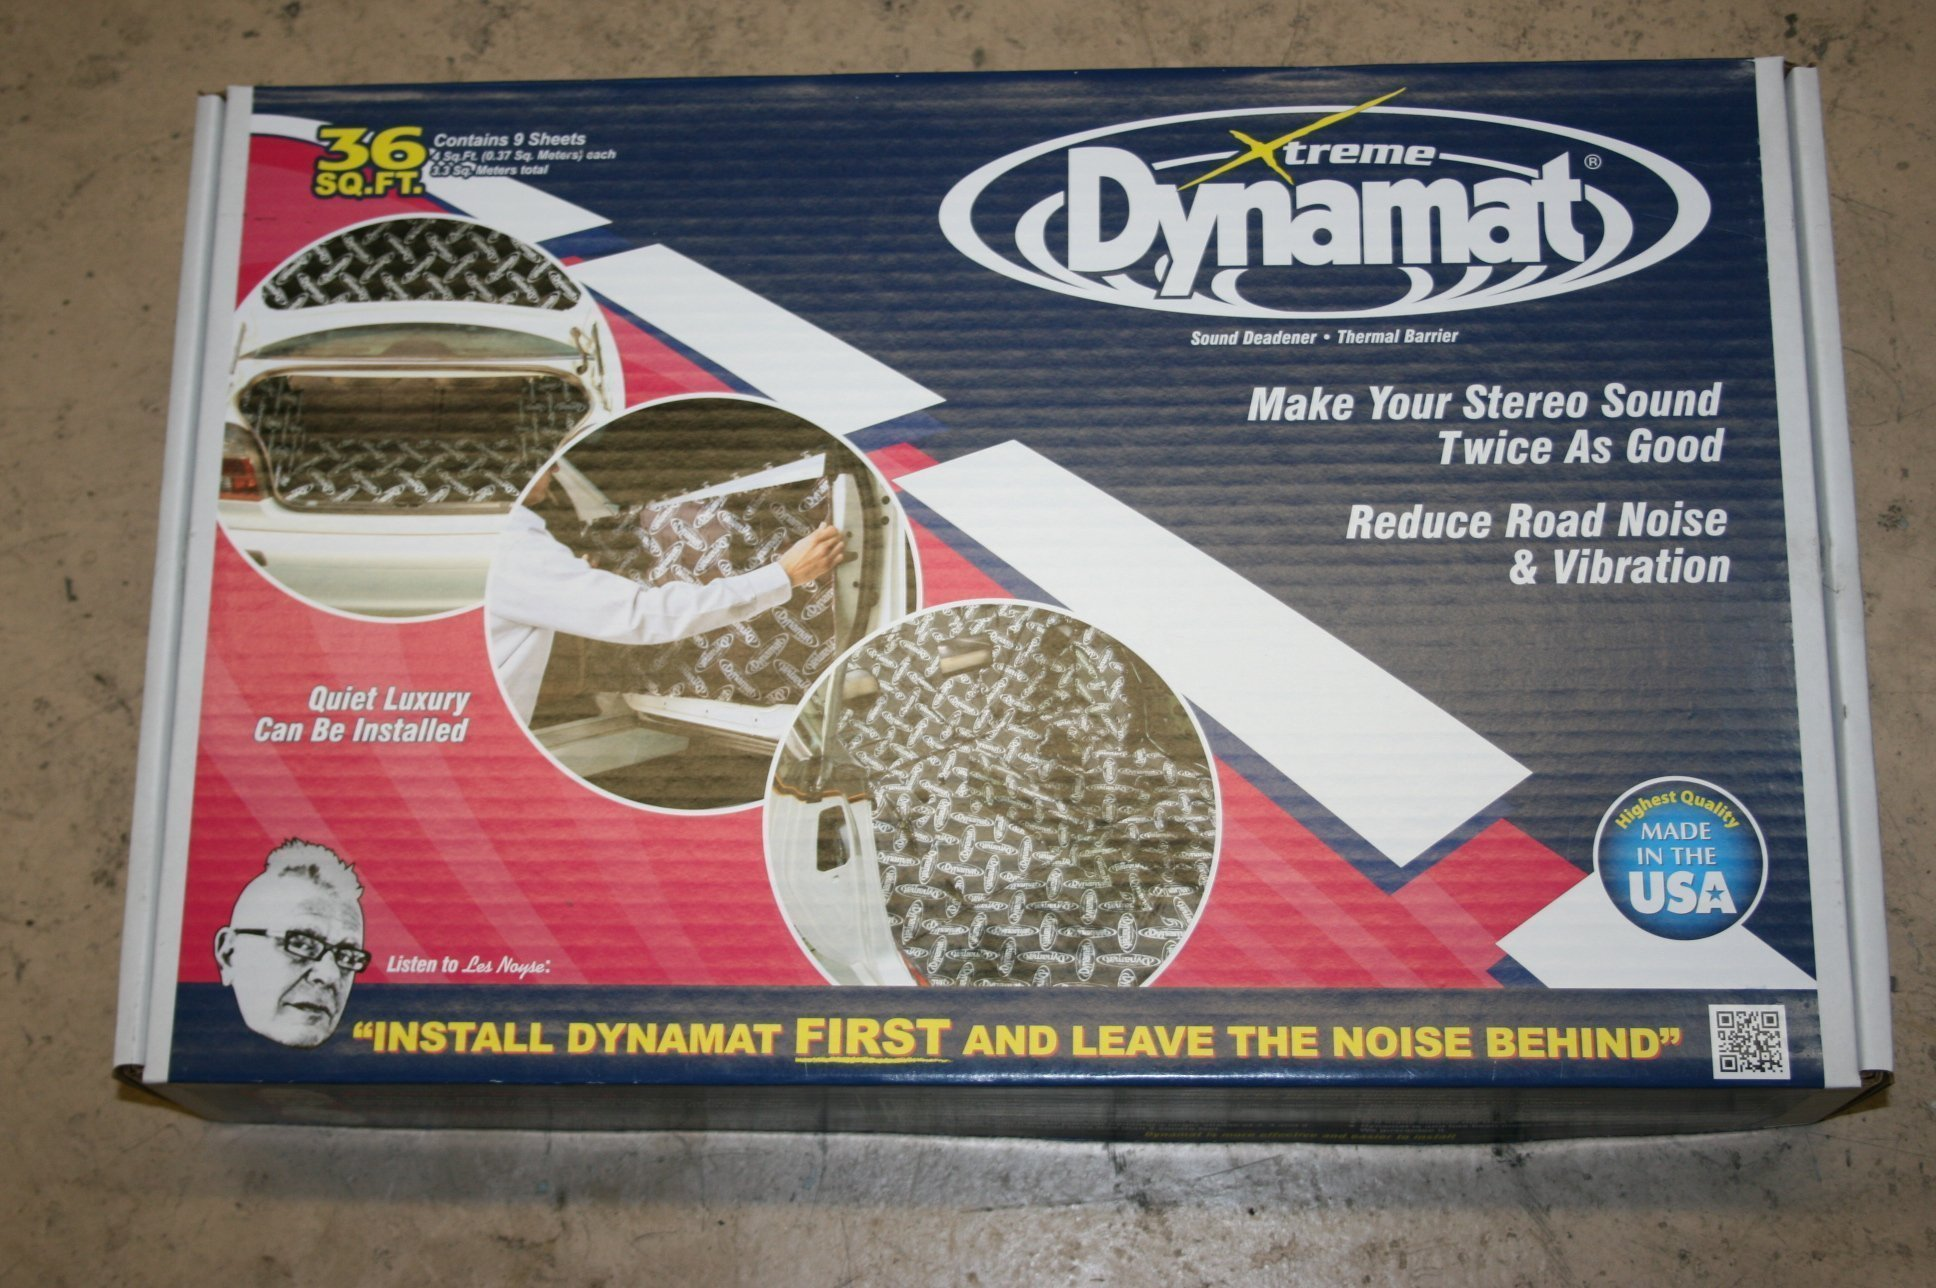 Dynamt Extreme Noise reduction